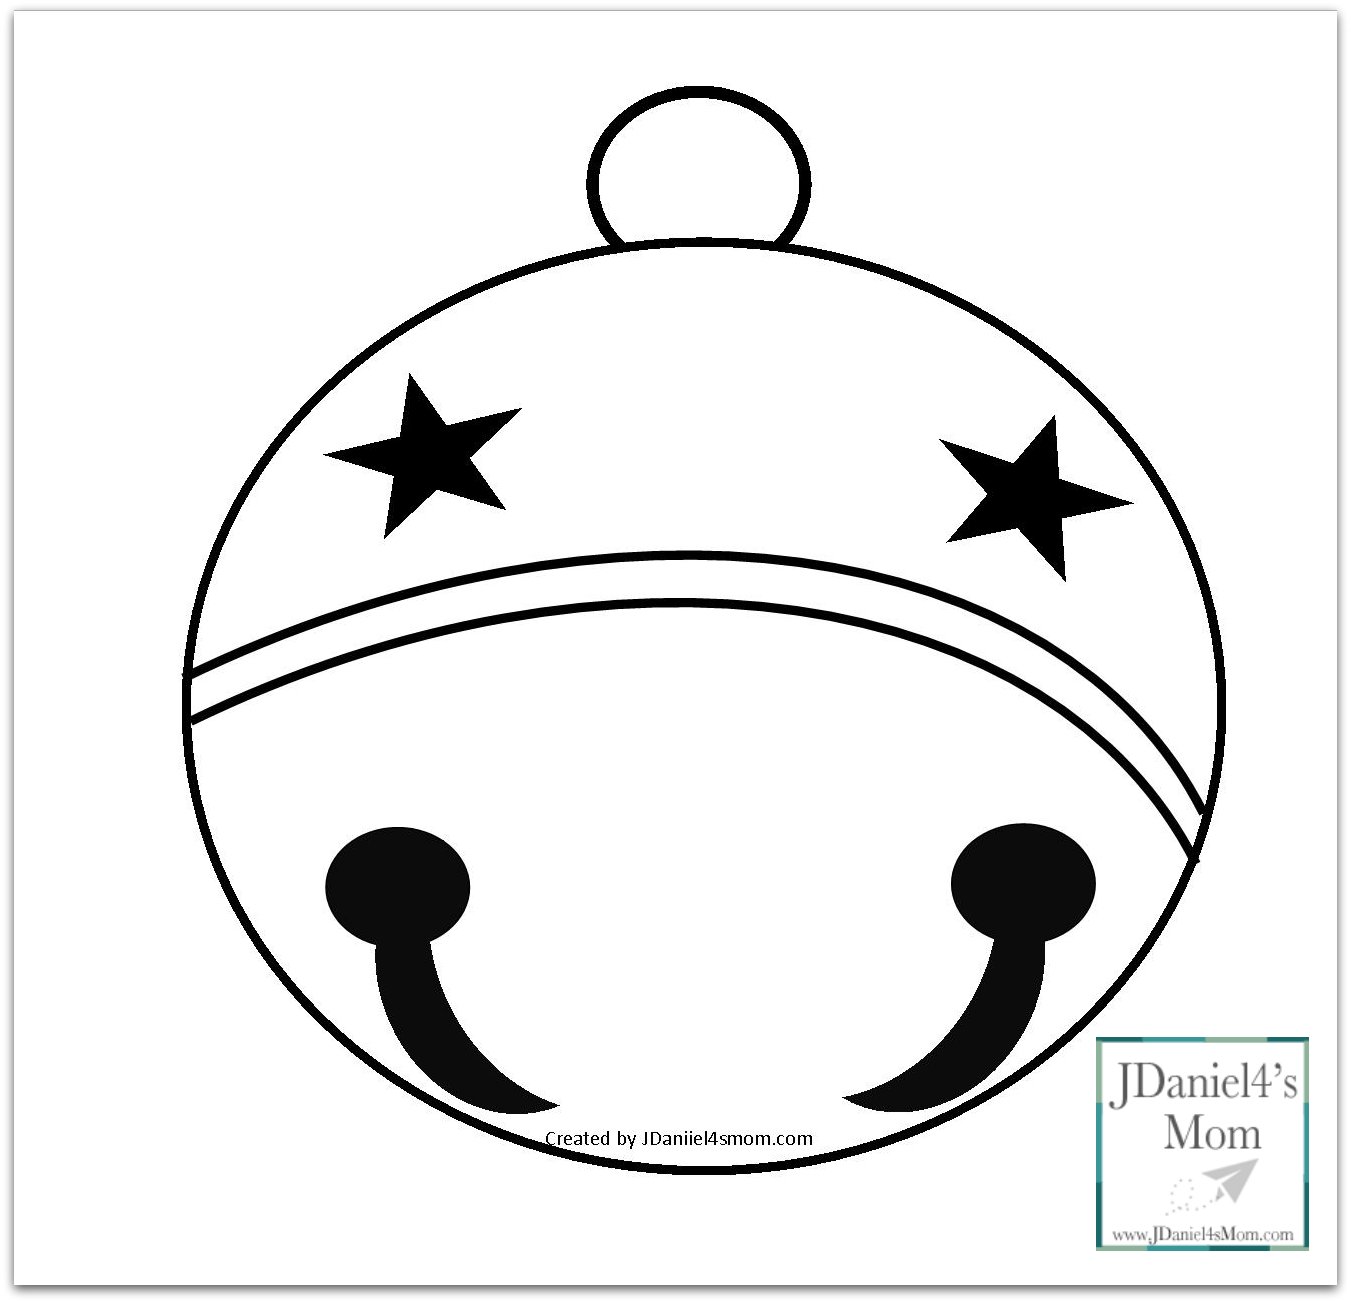 Polar express bell clipart black and white vector royalty free library Polar Express Archives - JDaniel4s Mom vector royalty free library